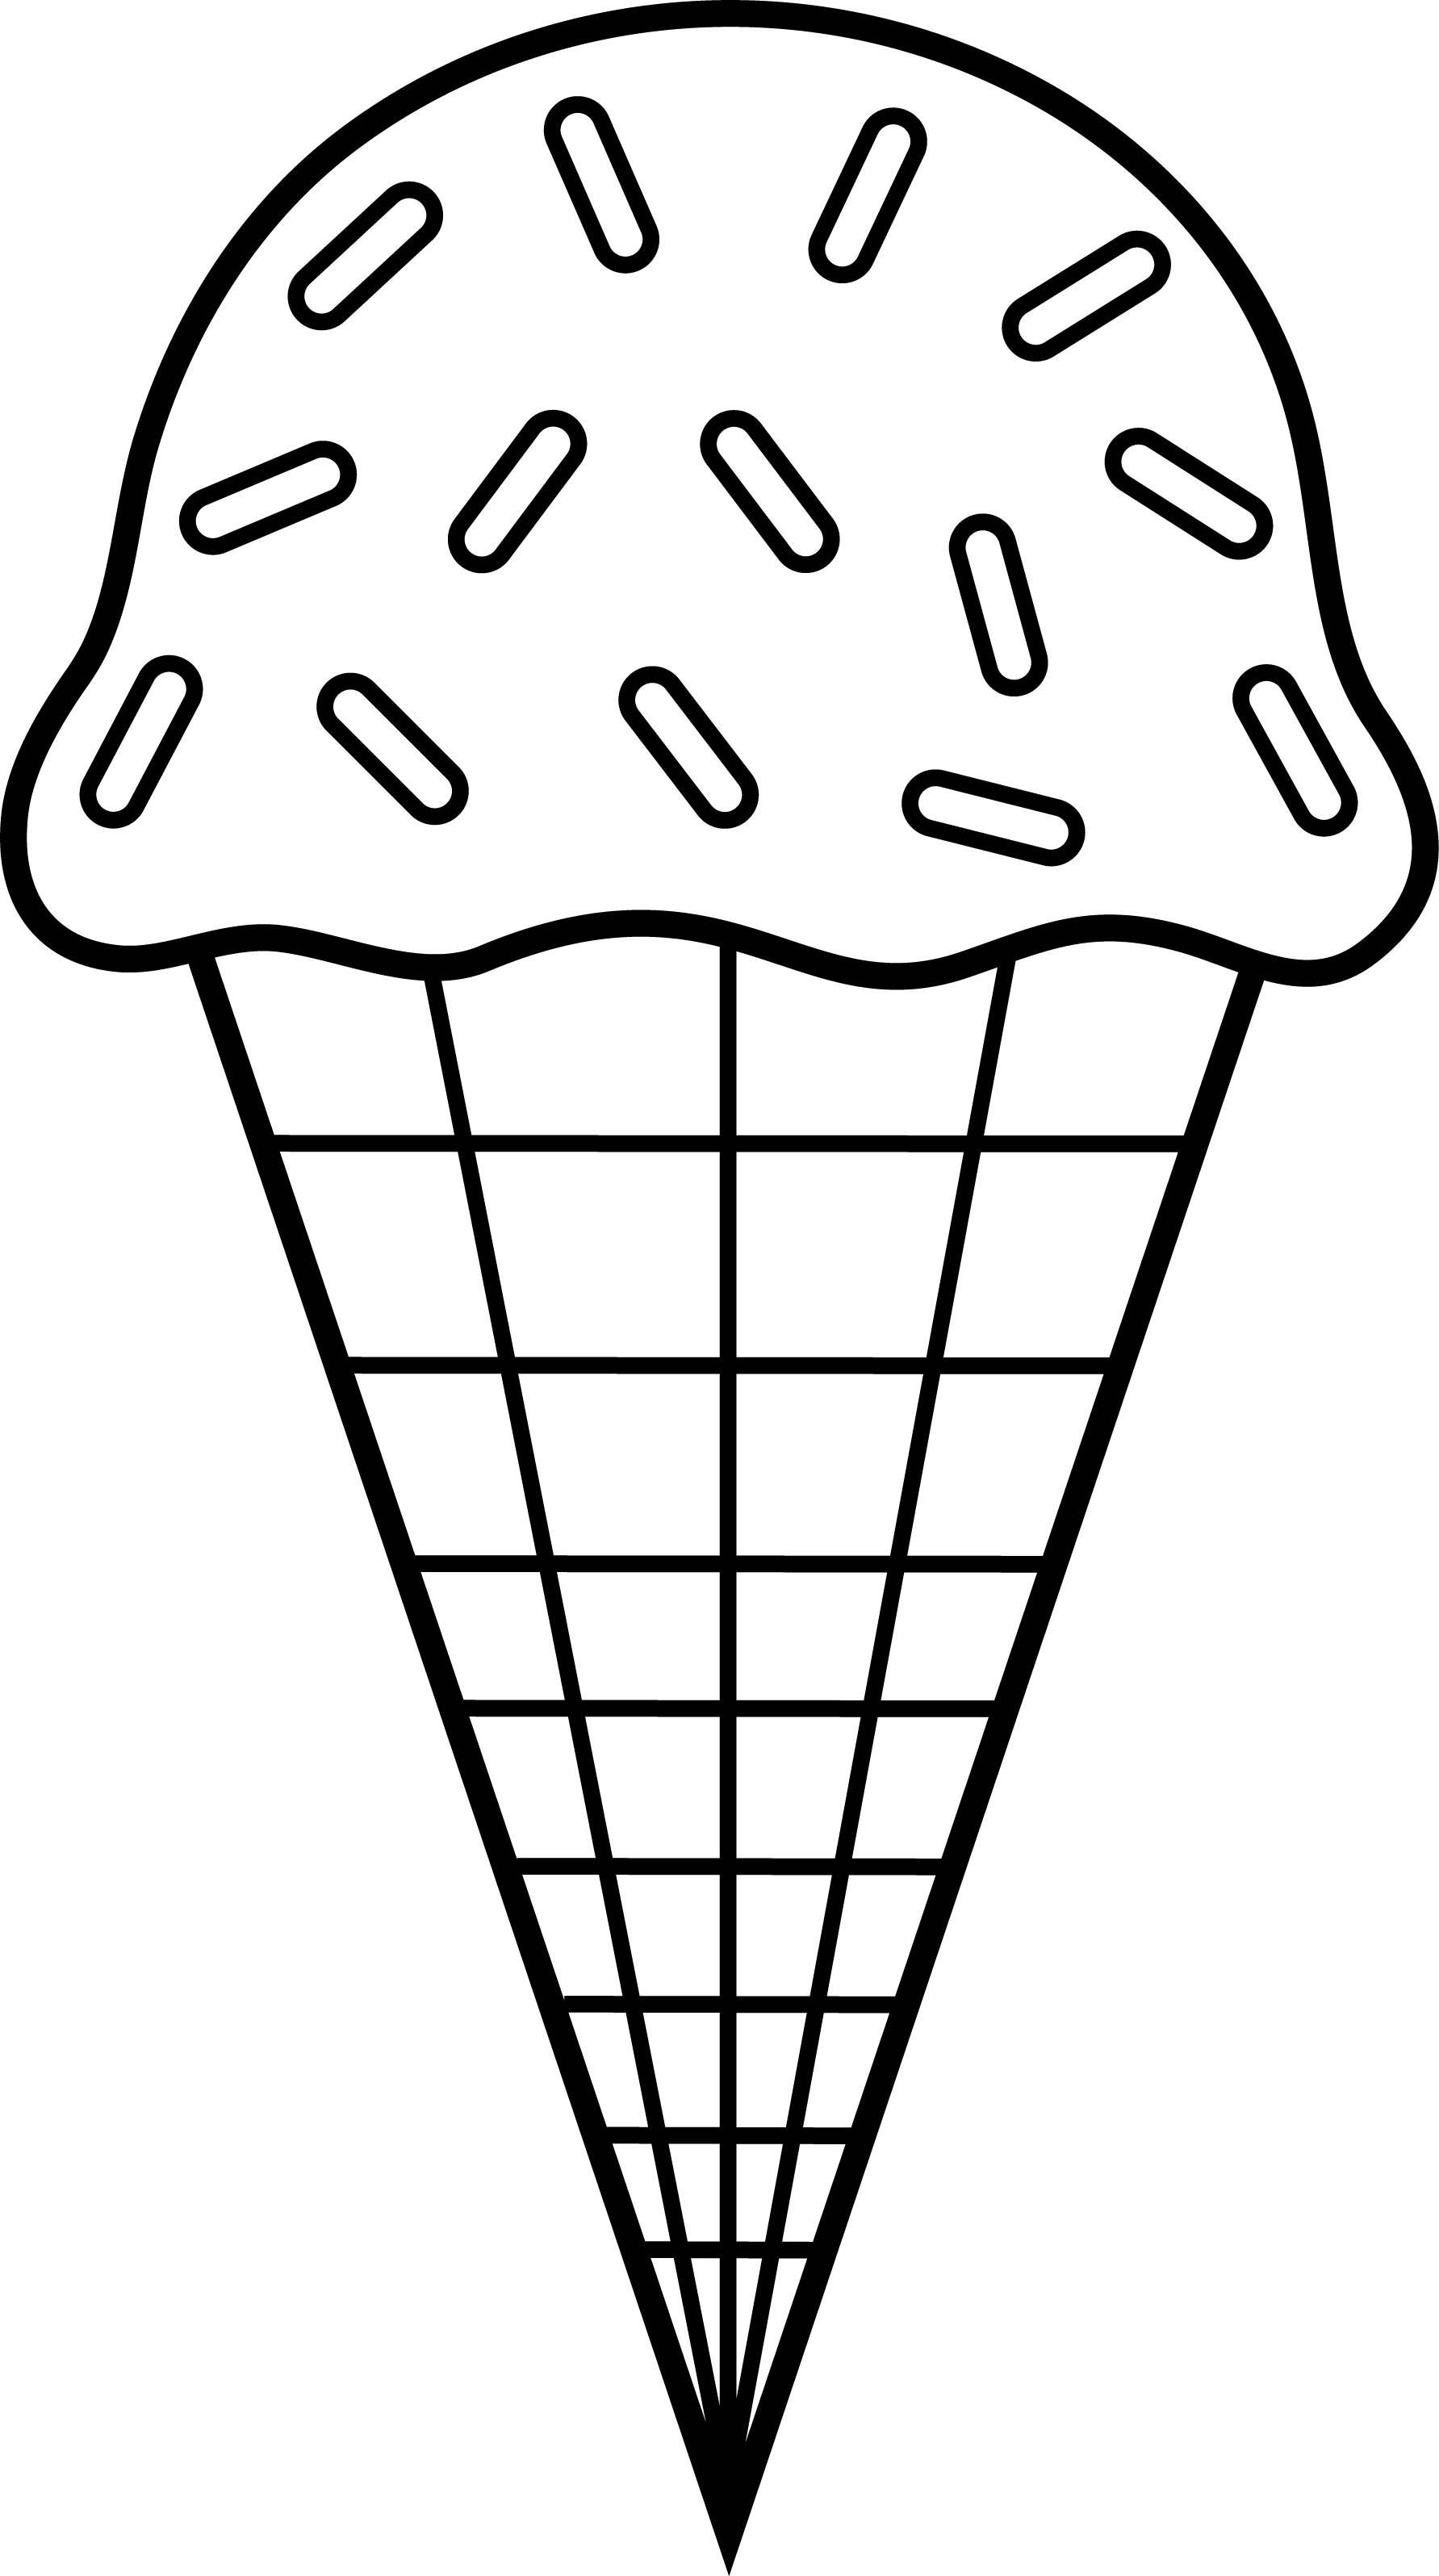 Black and white clipart png clip art transparent Ice Cream Png Black And White Free & Free Ice Cream Black And White ... clip art transparent